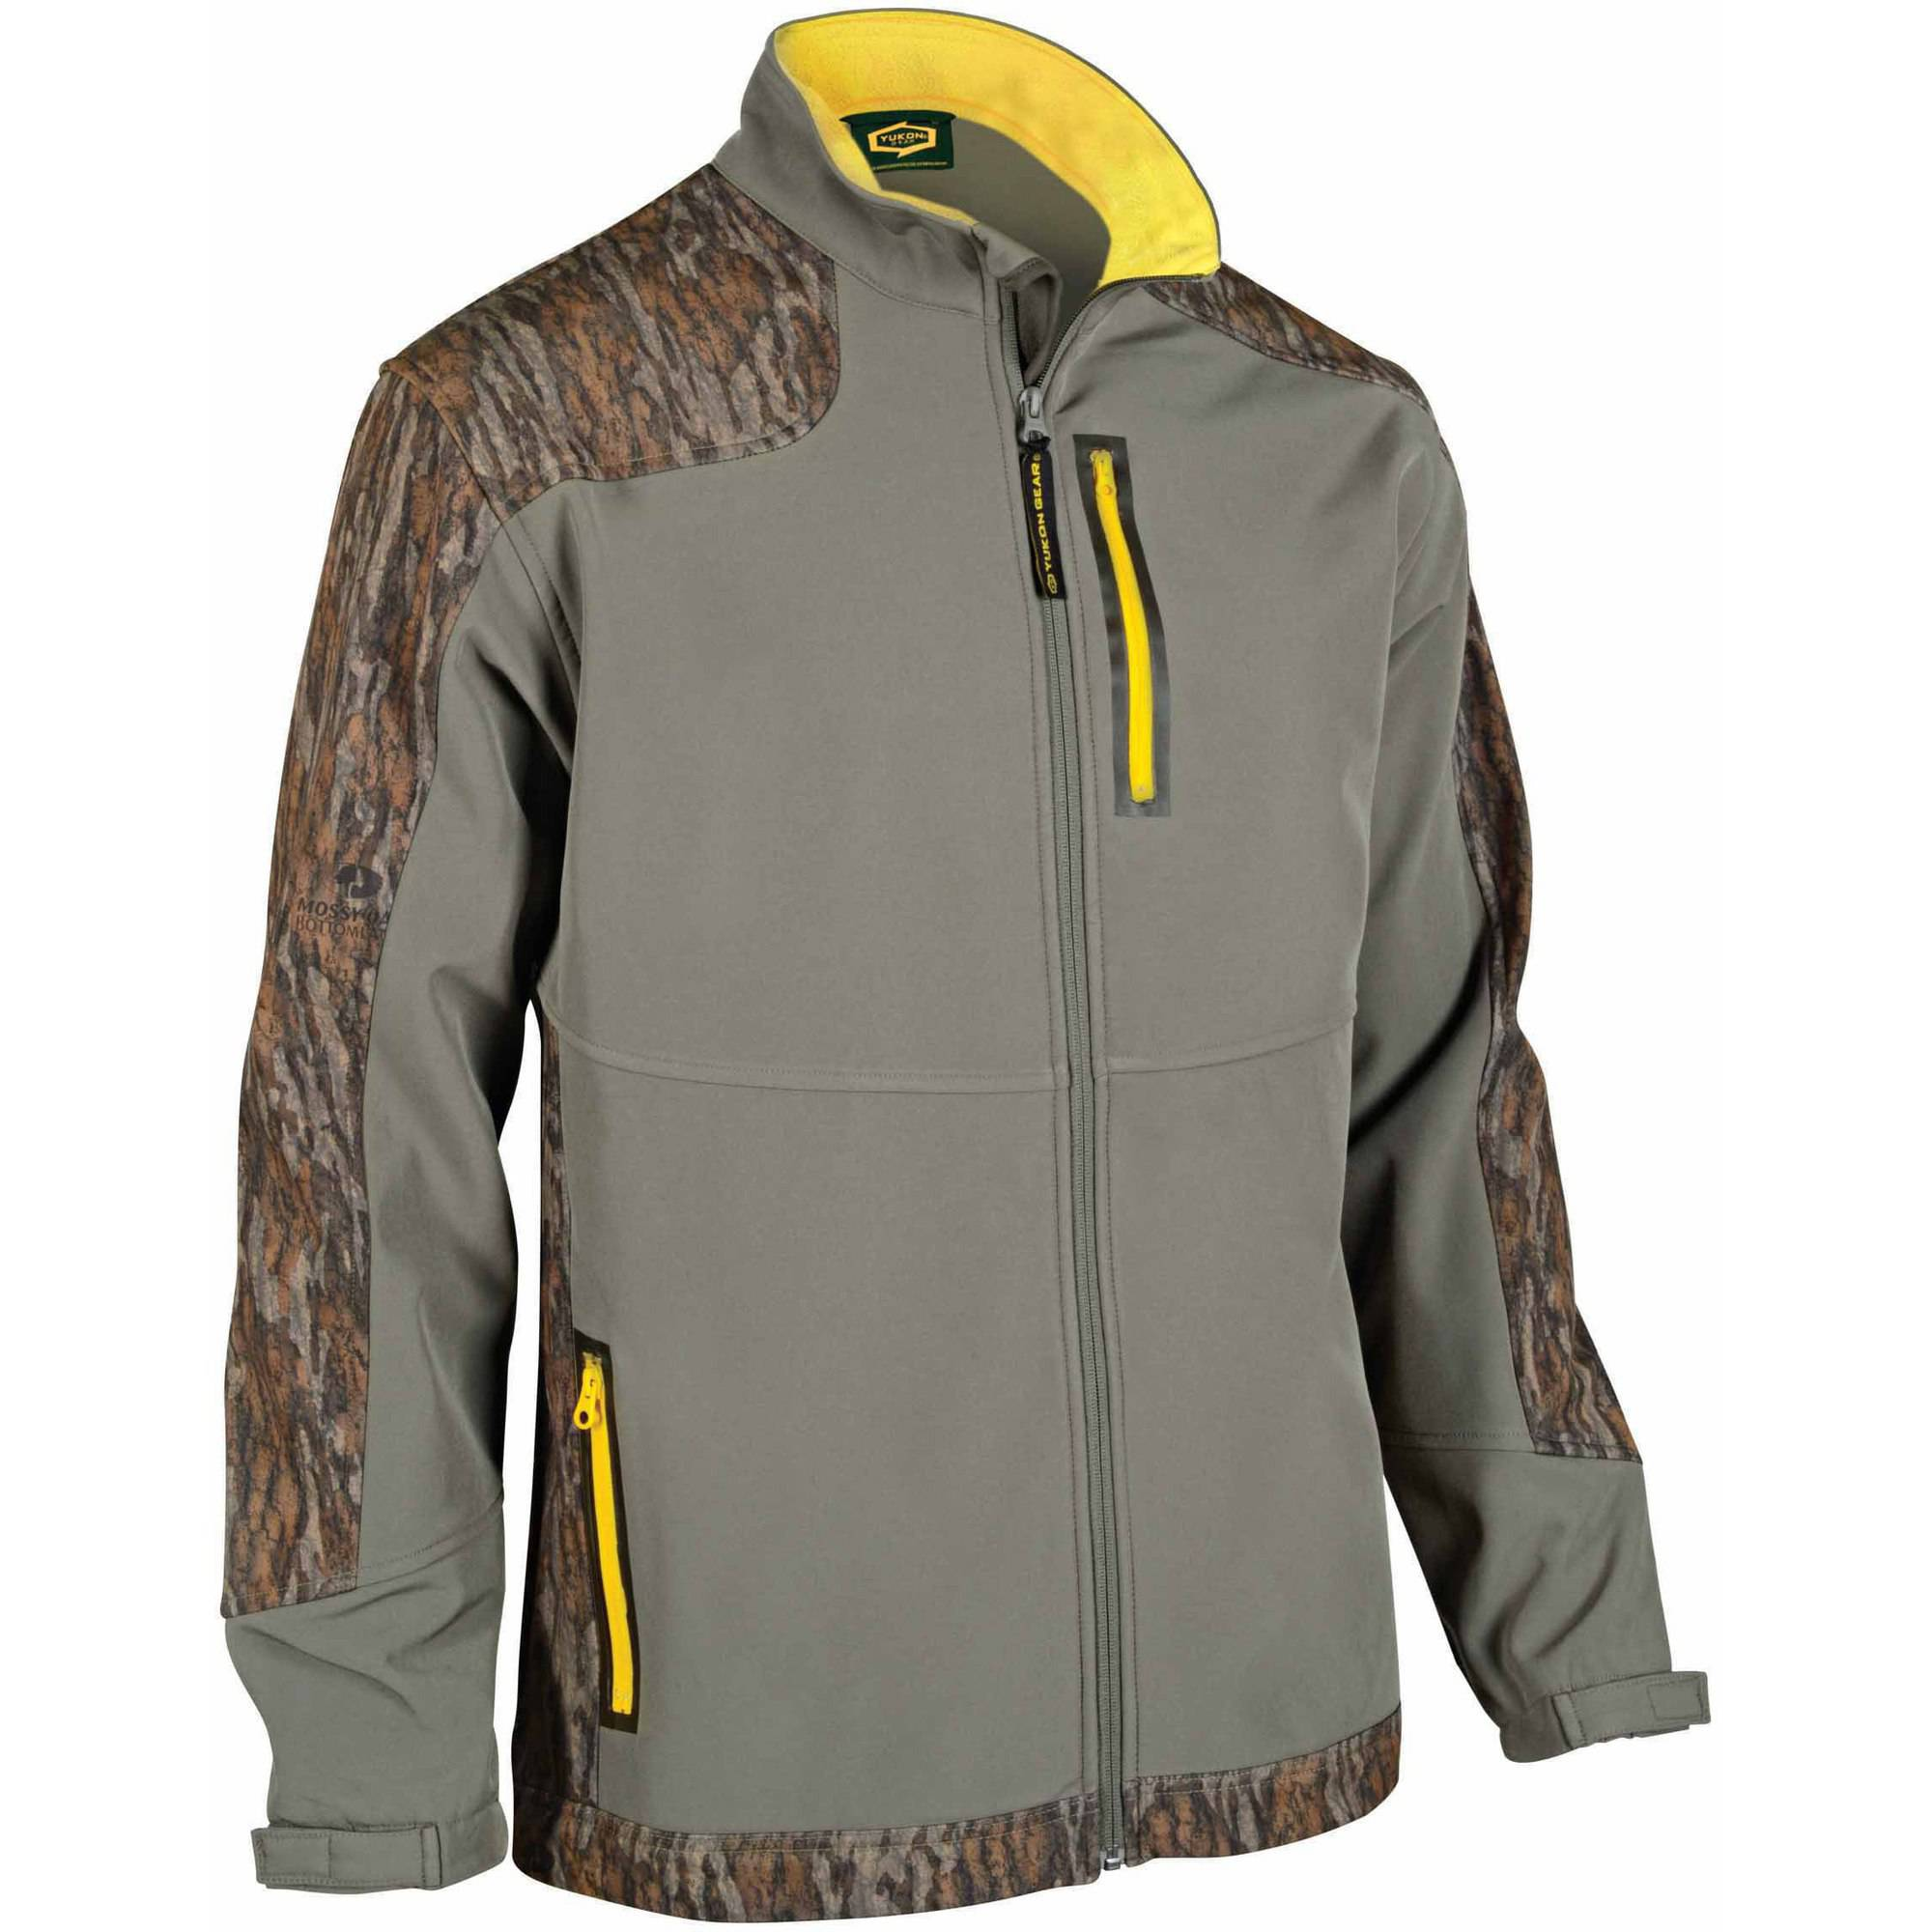 Yukon Gear Lifestyle Men's Softshell Jacket, Mossy Oak Bottomland by Yukon Gear